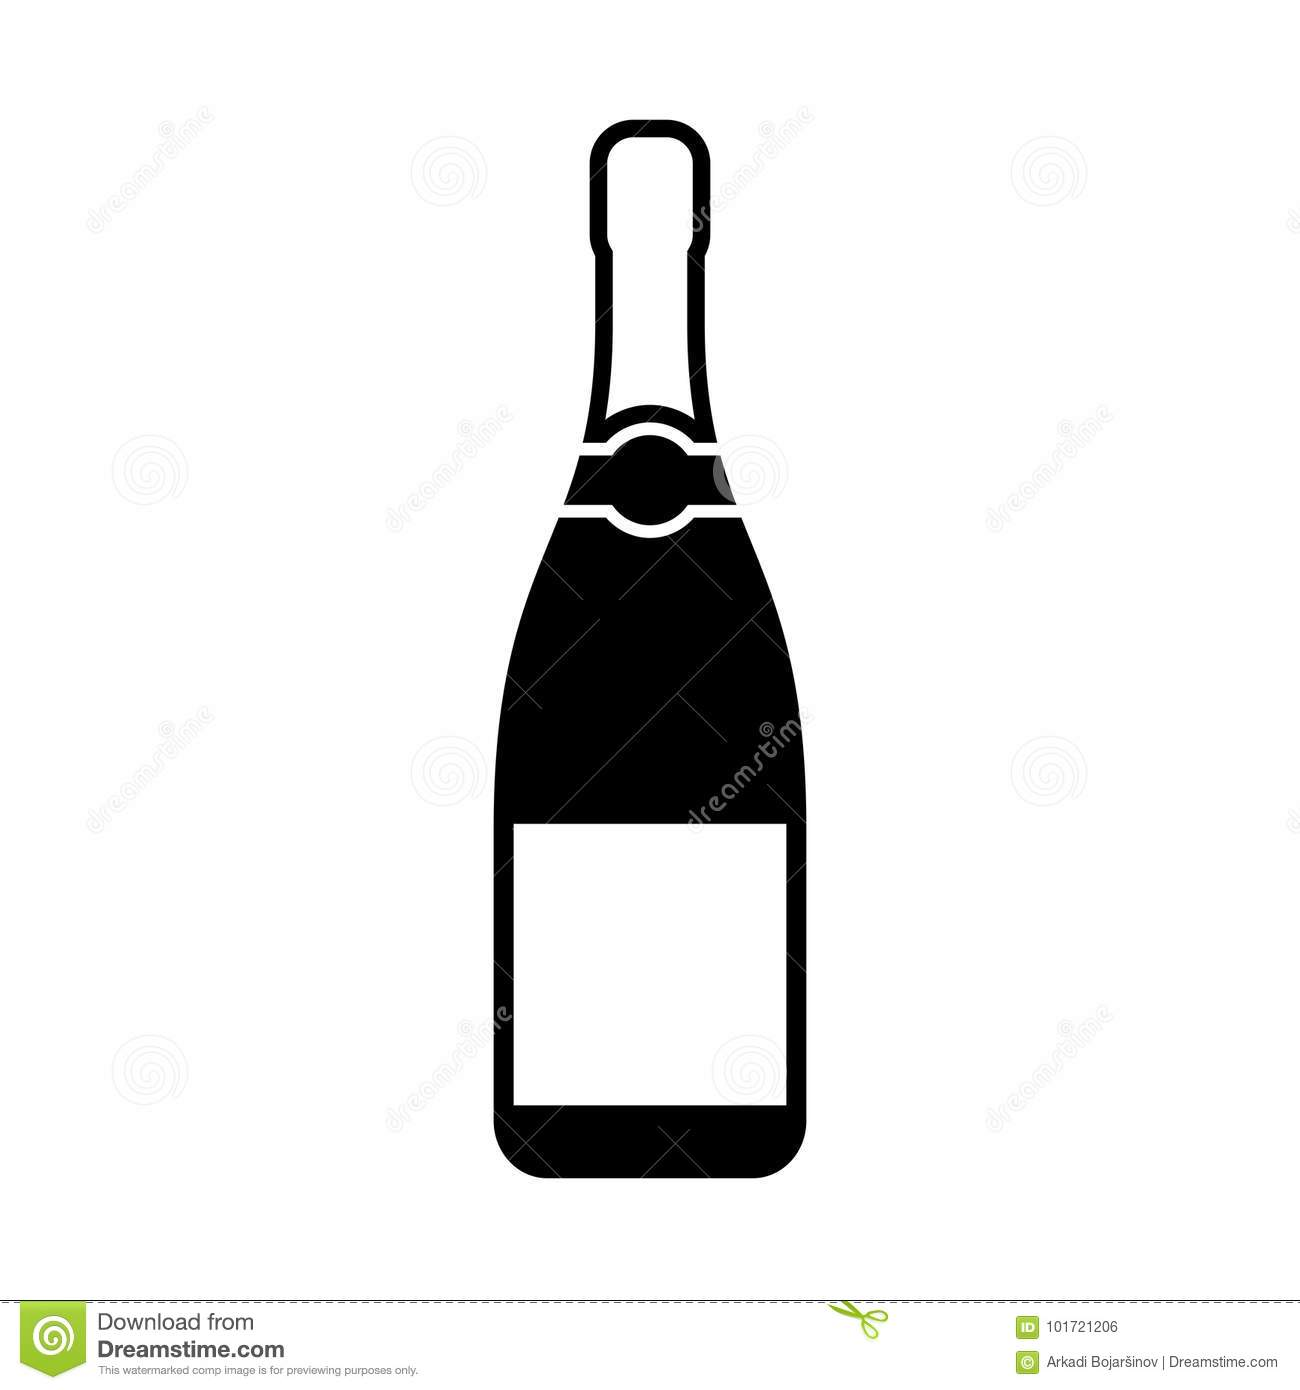 Champagne bottle silhouette icon